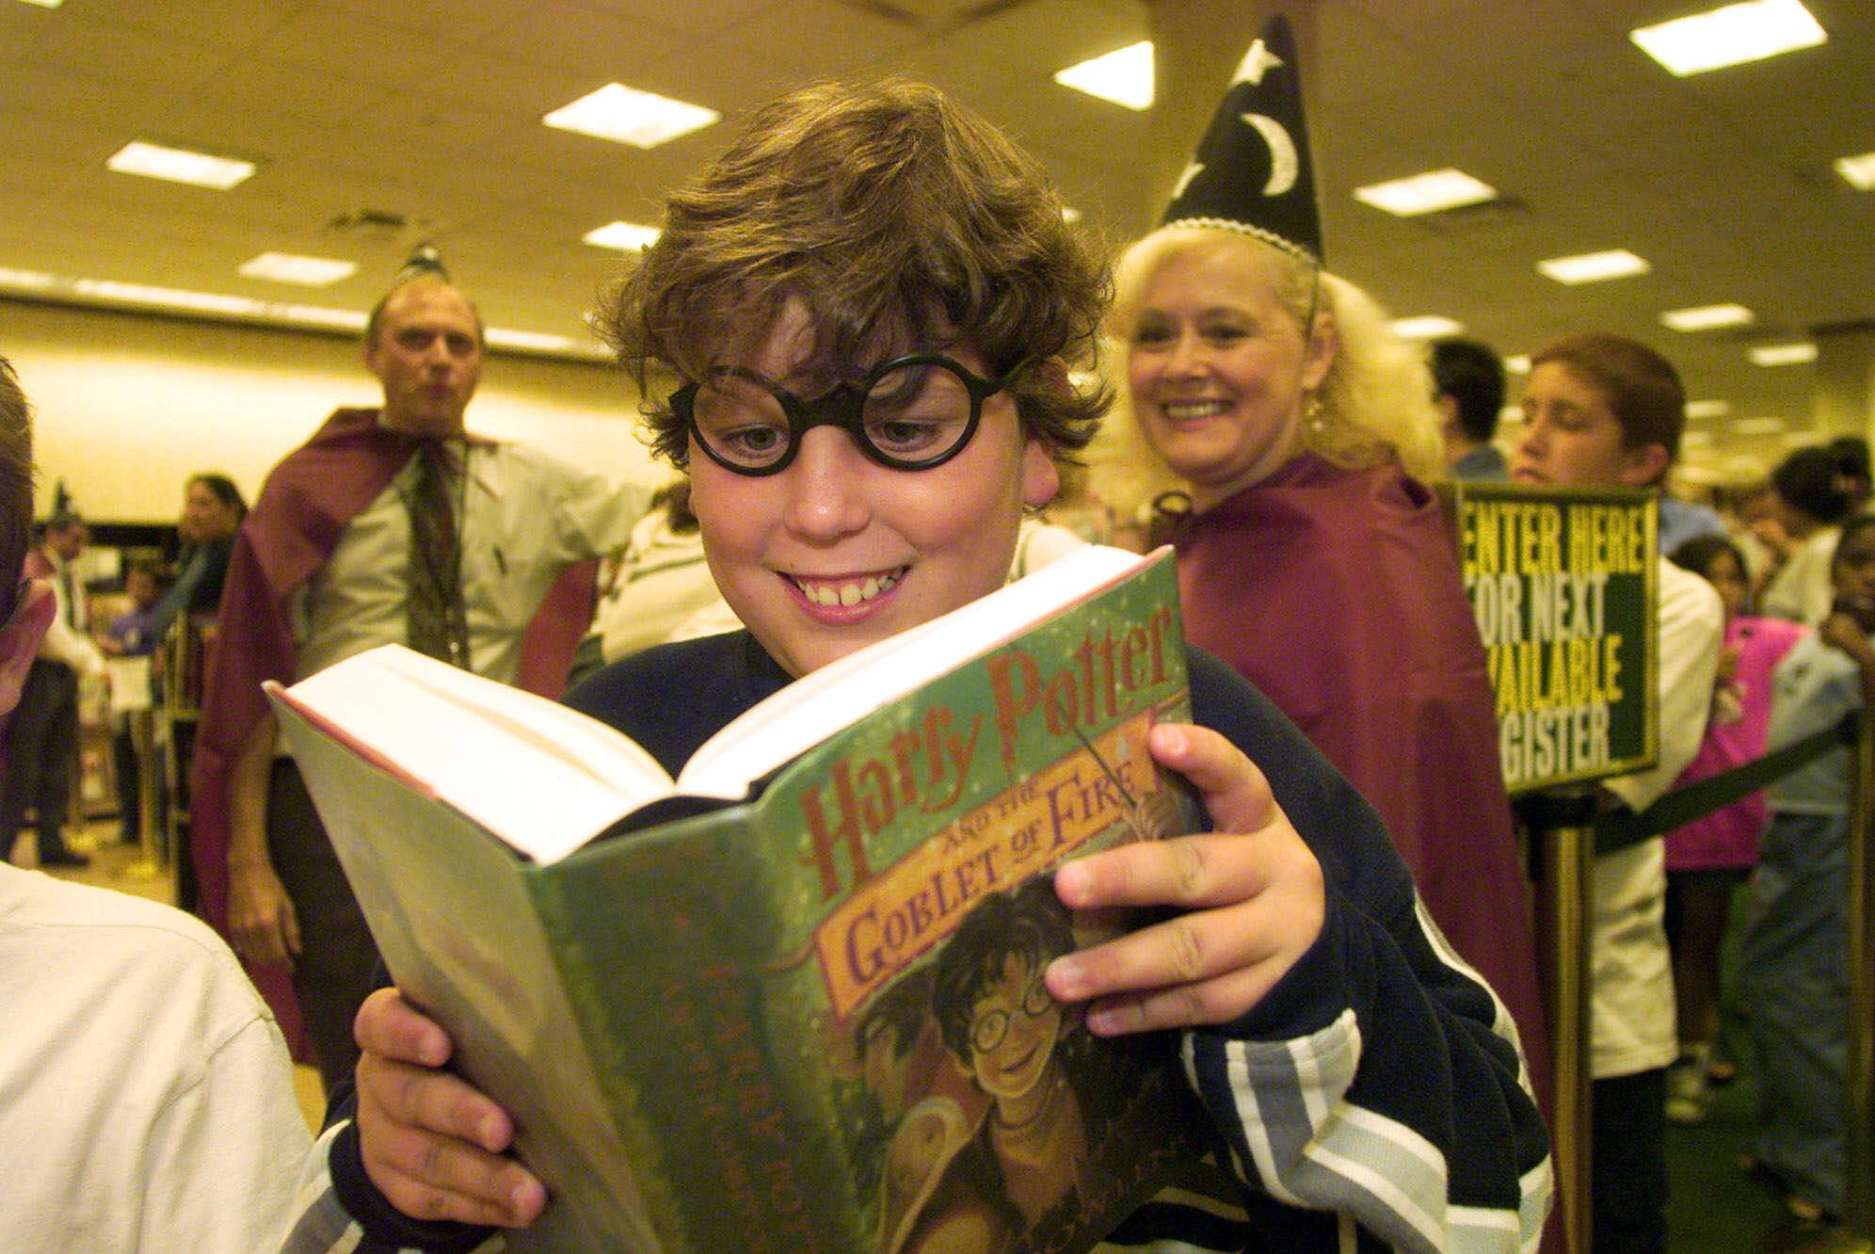 The Harry Potter series inspired midnight bookstore openings with long lines; many of our readers continue to go through the series. (WTOP/Jill Connelly)